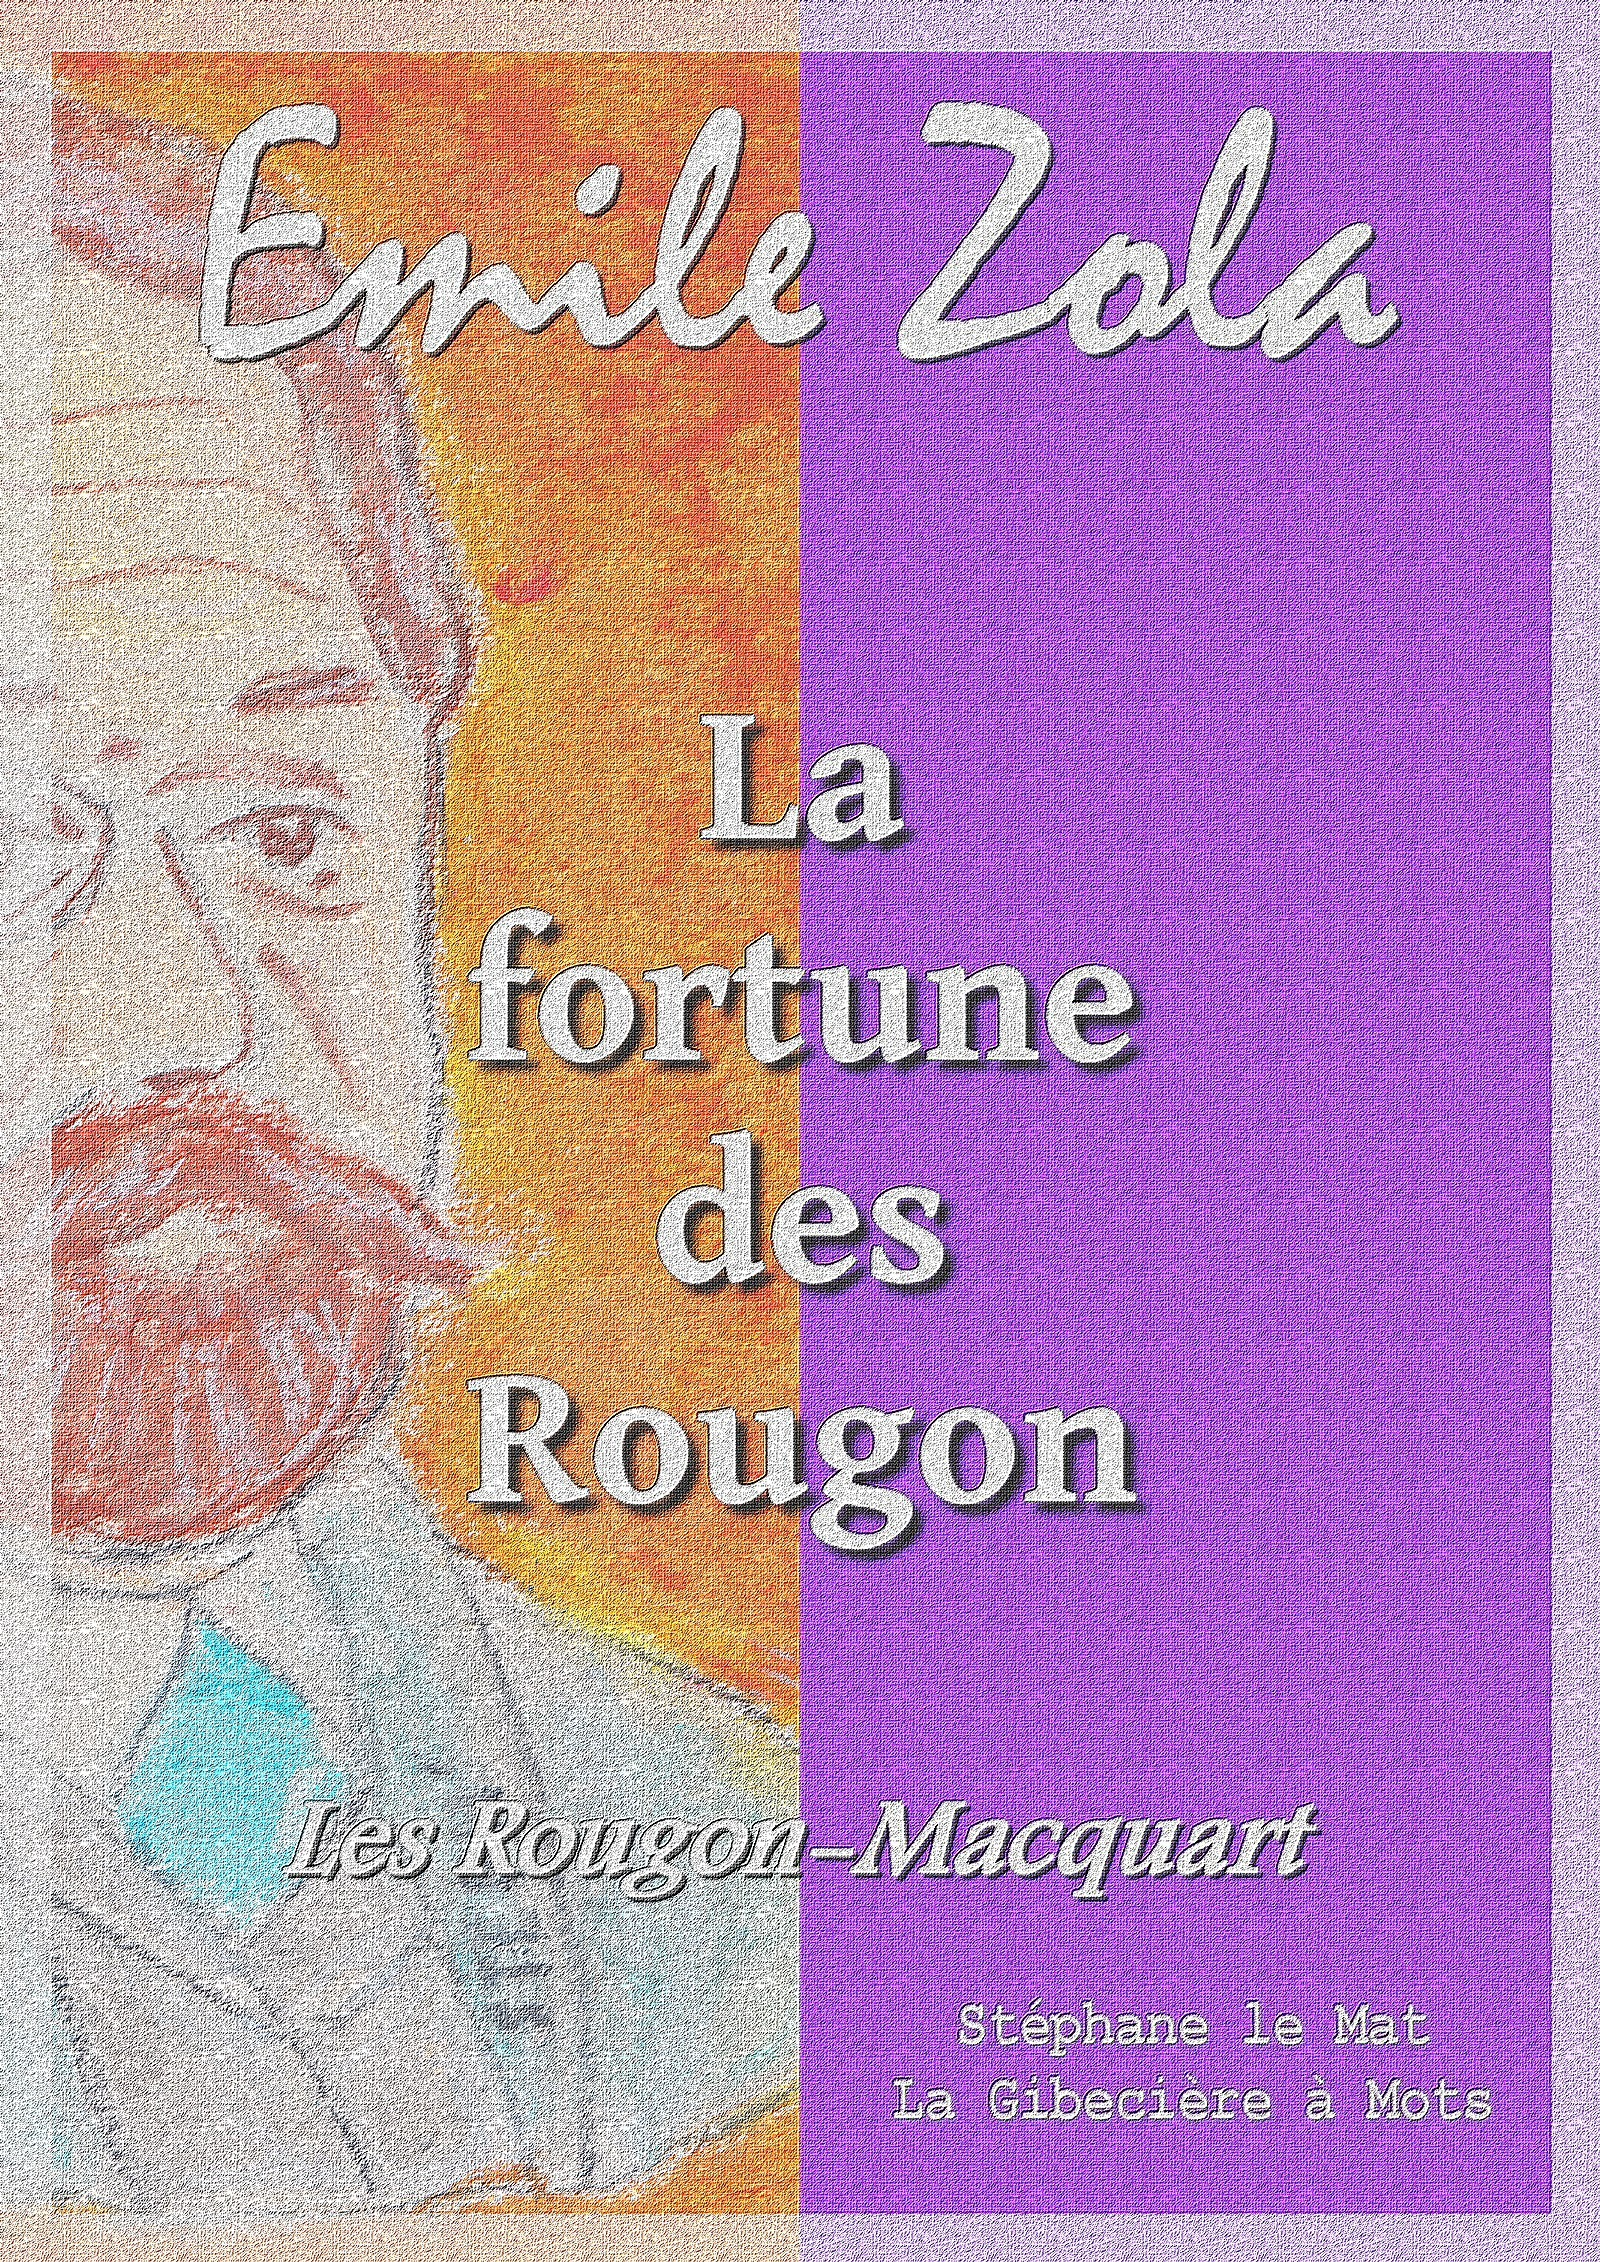 La fortune des Rougon, LES ROUGON-MACQUART 1/20